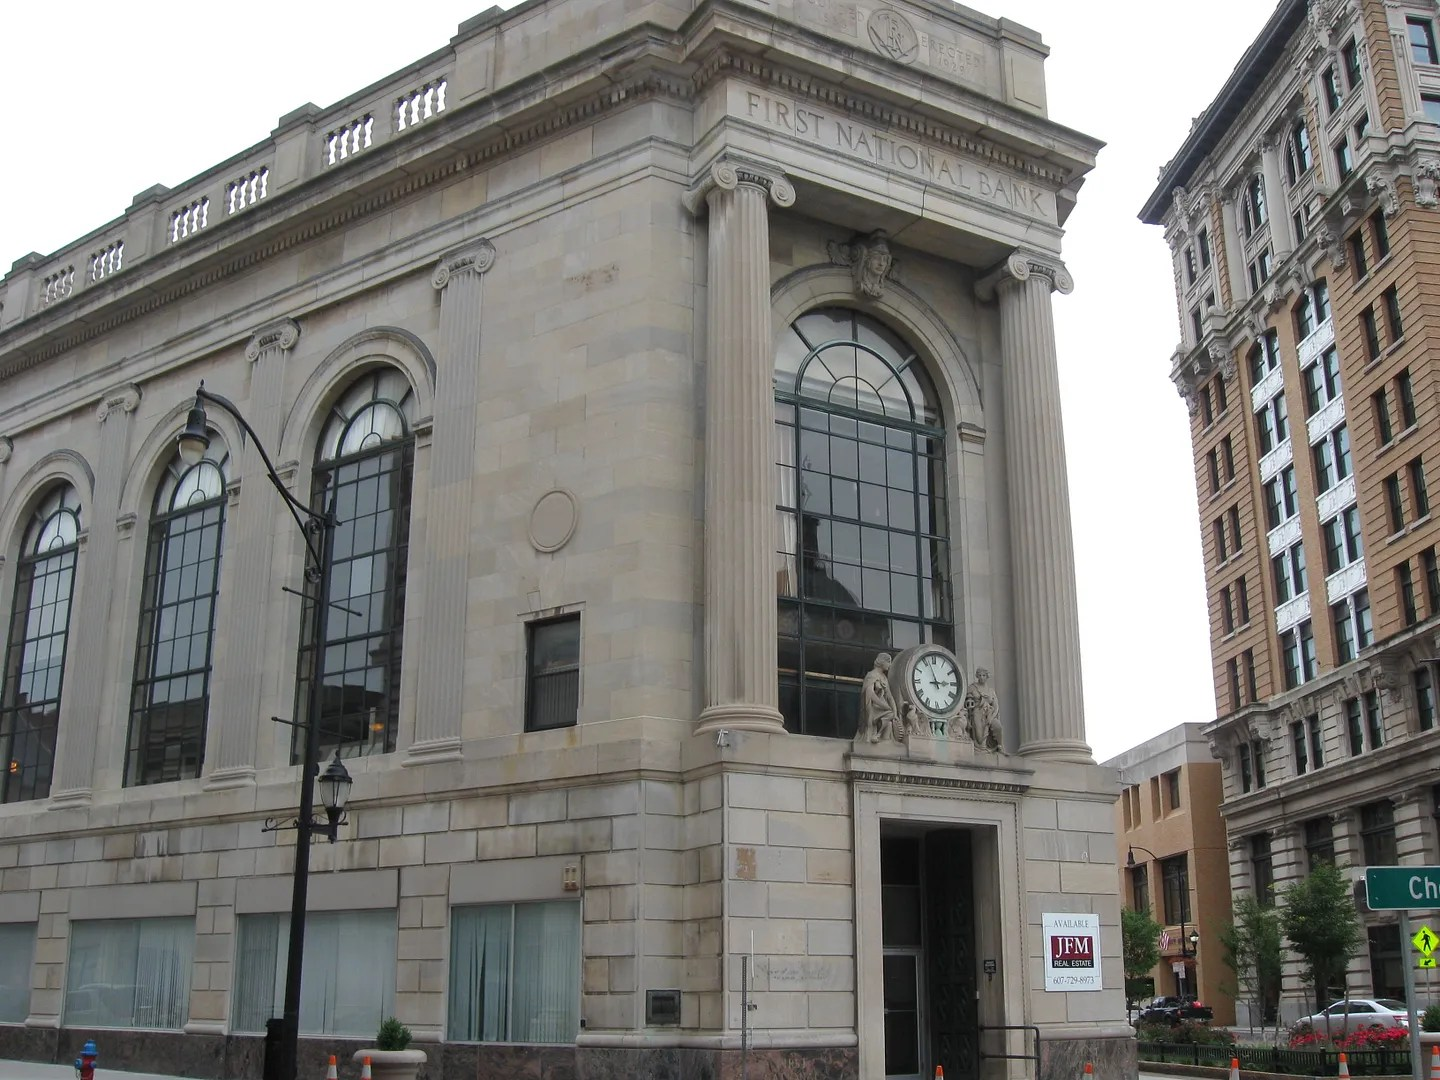 First National Bank, Binghamton